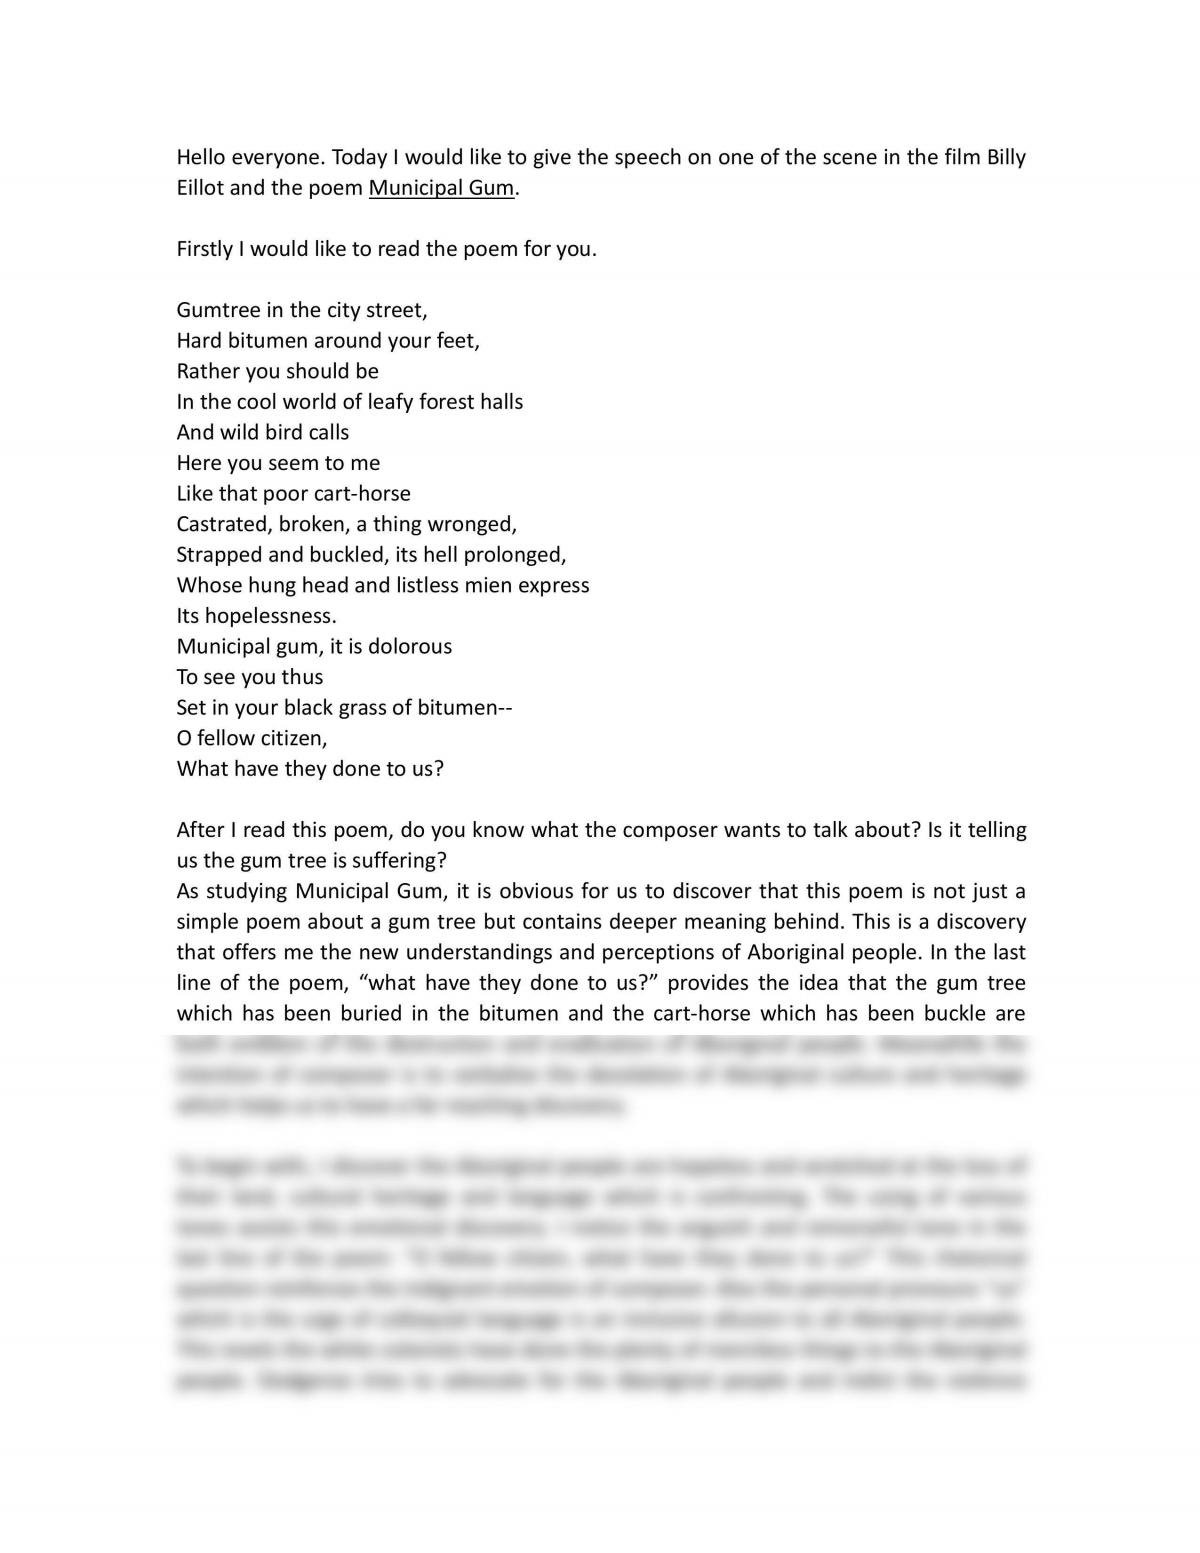 ESL Speech About the Discovery on Billy Eillot and Poem of Oodgeroo  - Page 1